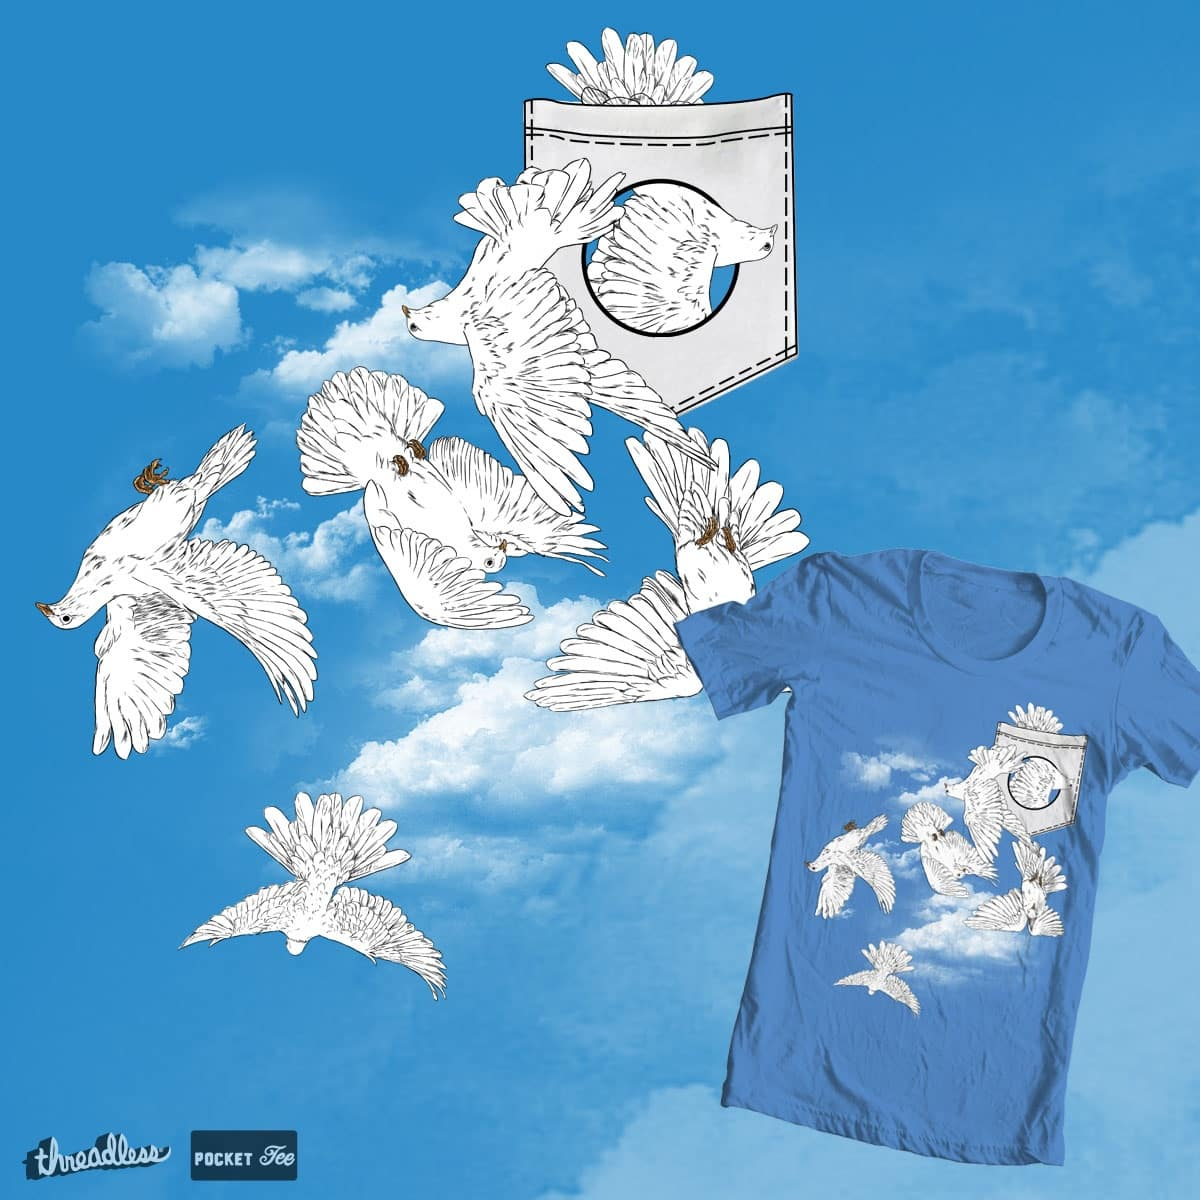 birds in the pocket by hadee on Threadless